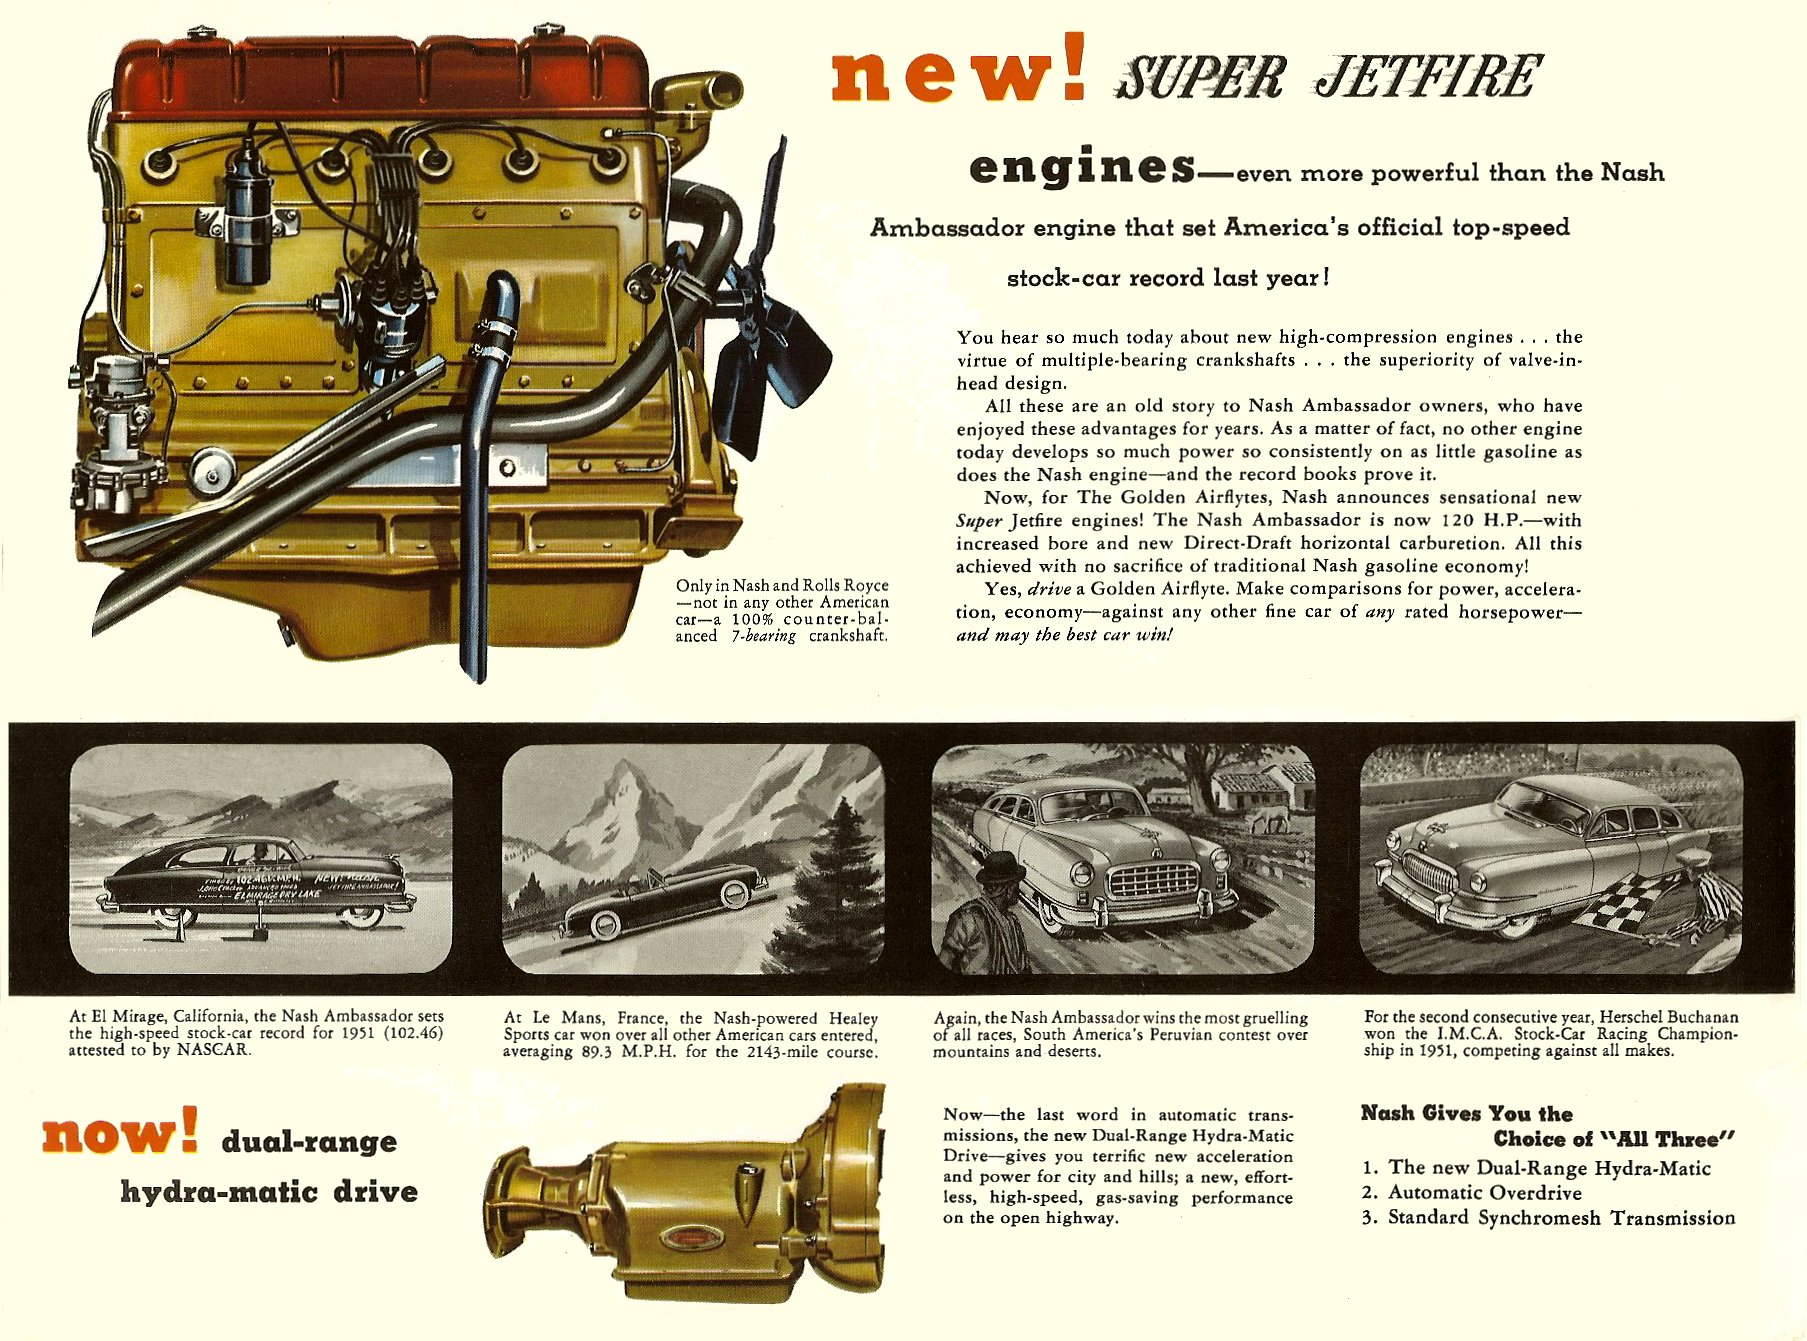 1952 The Golden Airflyte 1902-1952 Golden Anniversary By NASH Sales Catalog NSP-52-950-250M-3-52 Page 10, 12″x9″